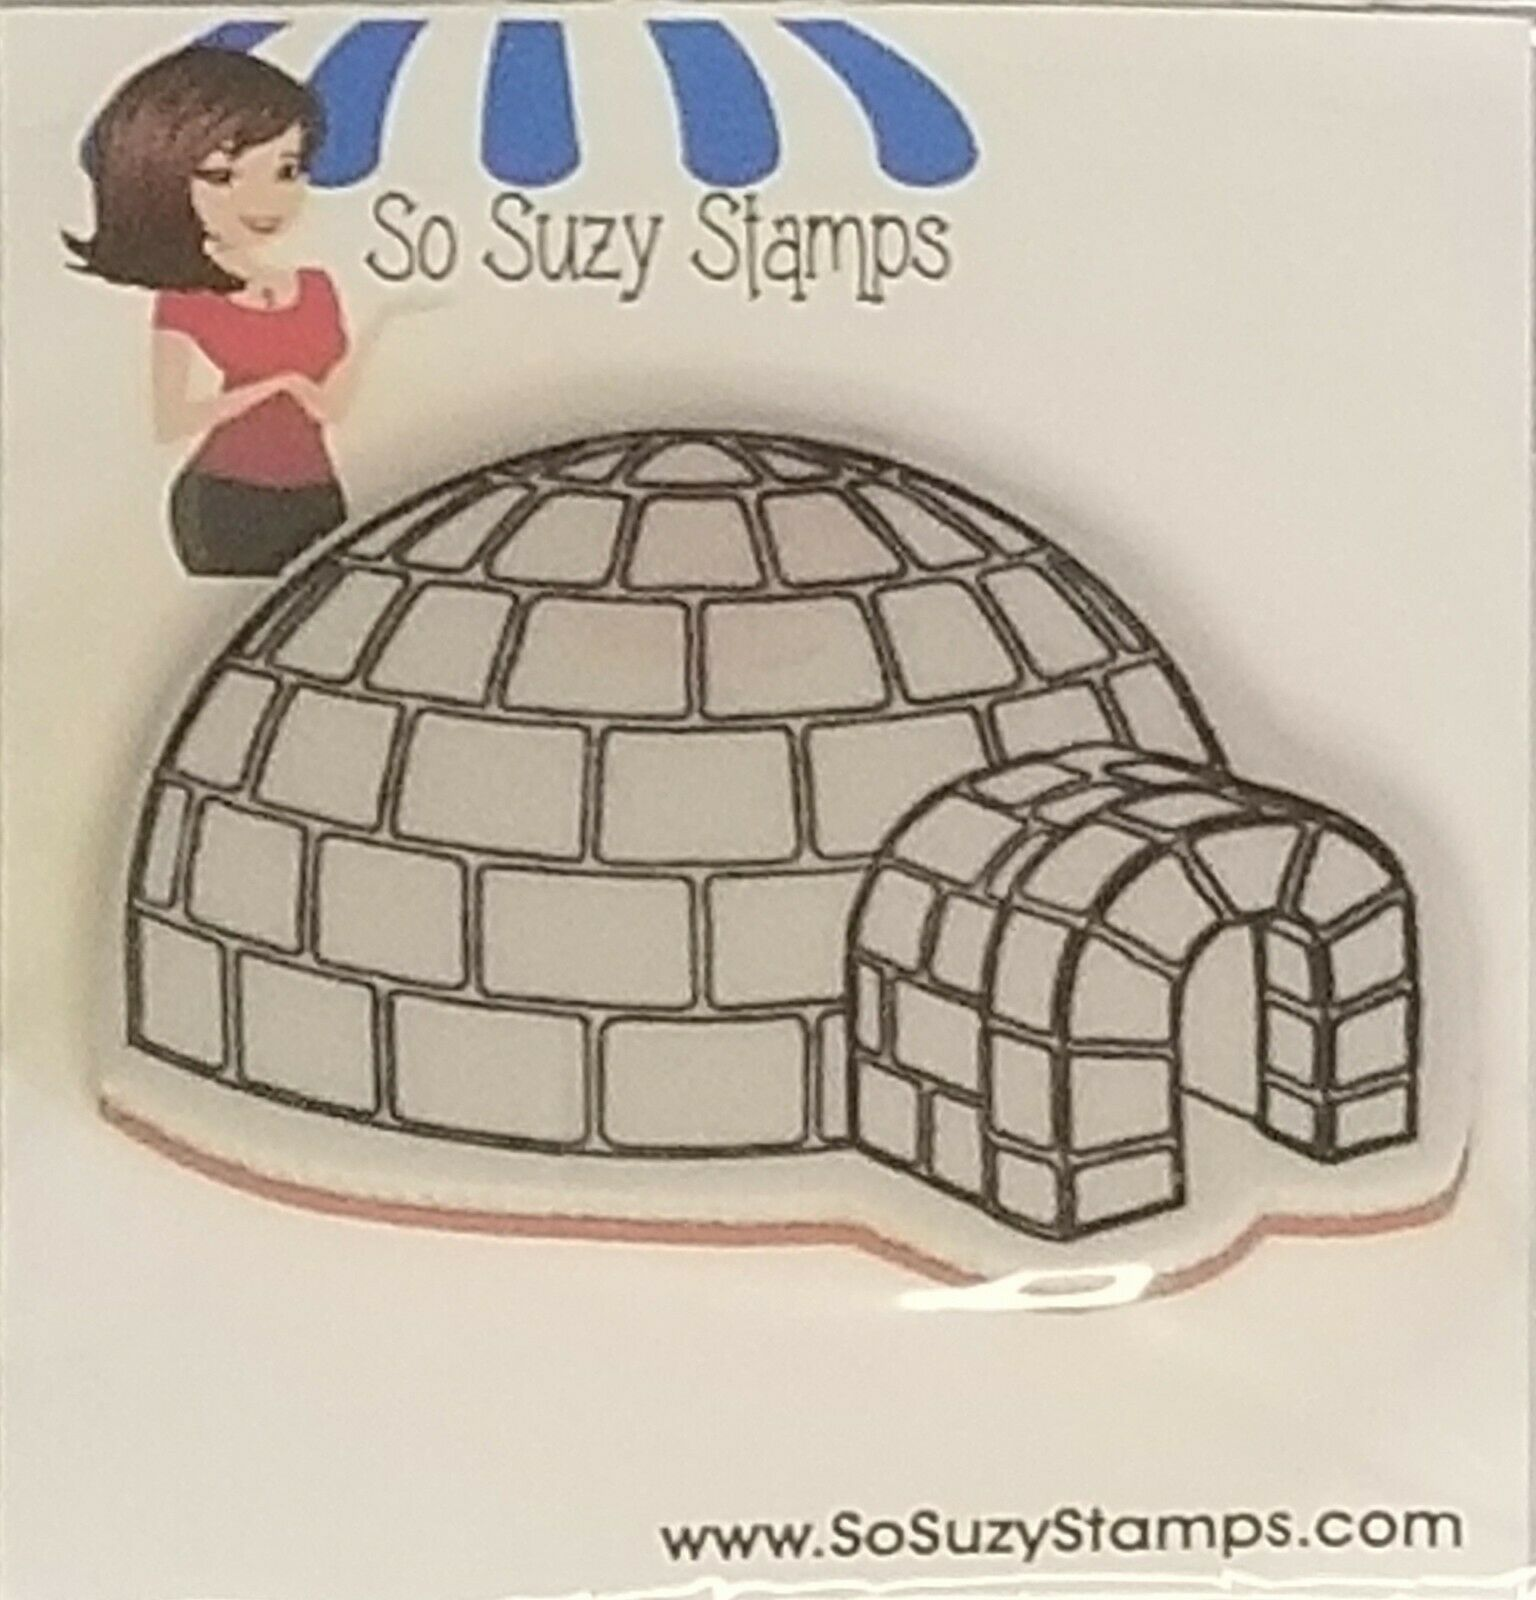 So Suzy Stamps Igloo Rubber Stamp